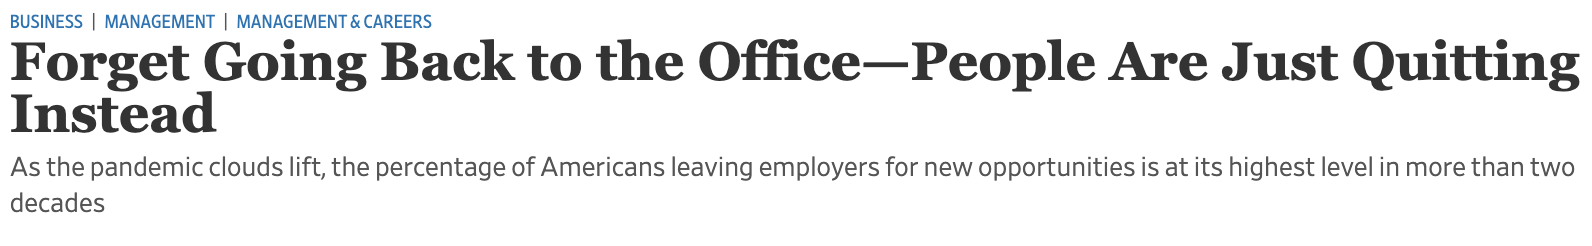 Forget going back to the office